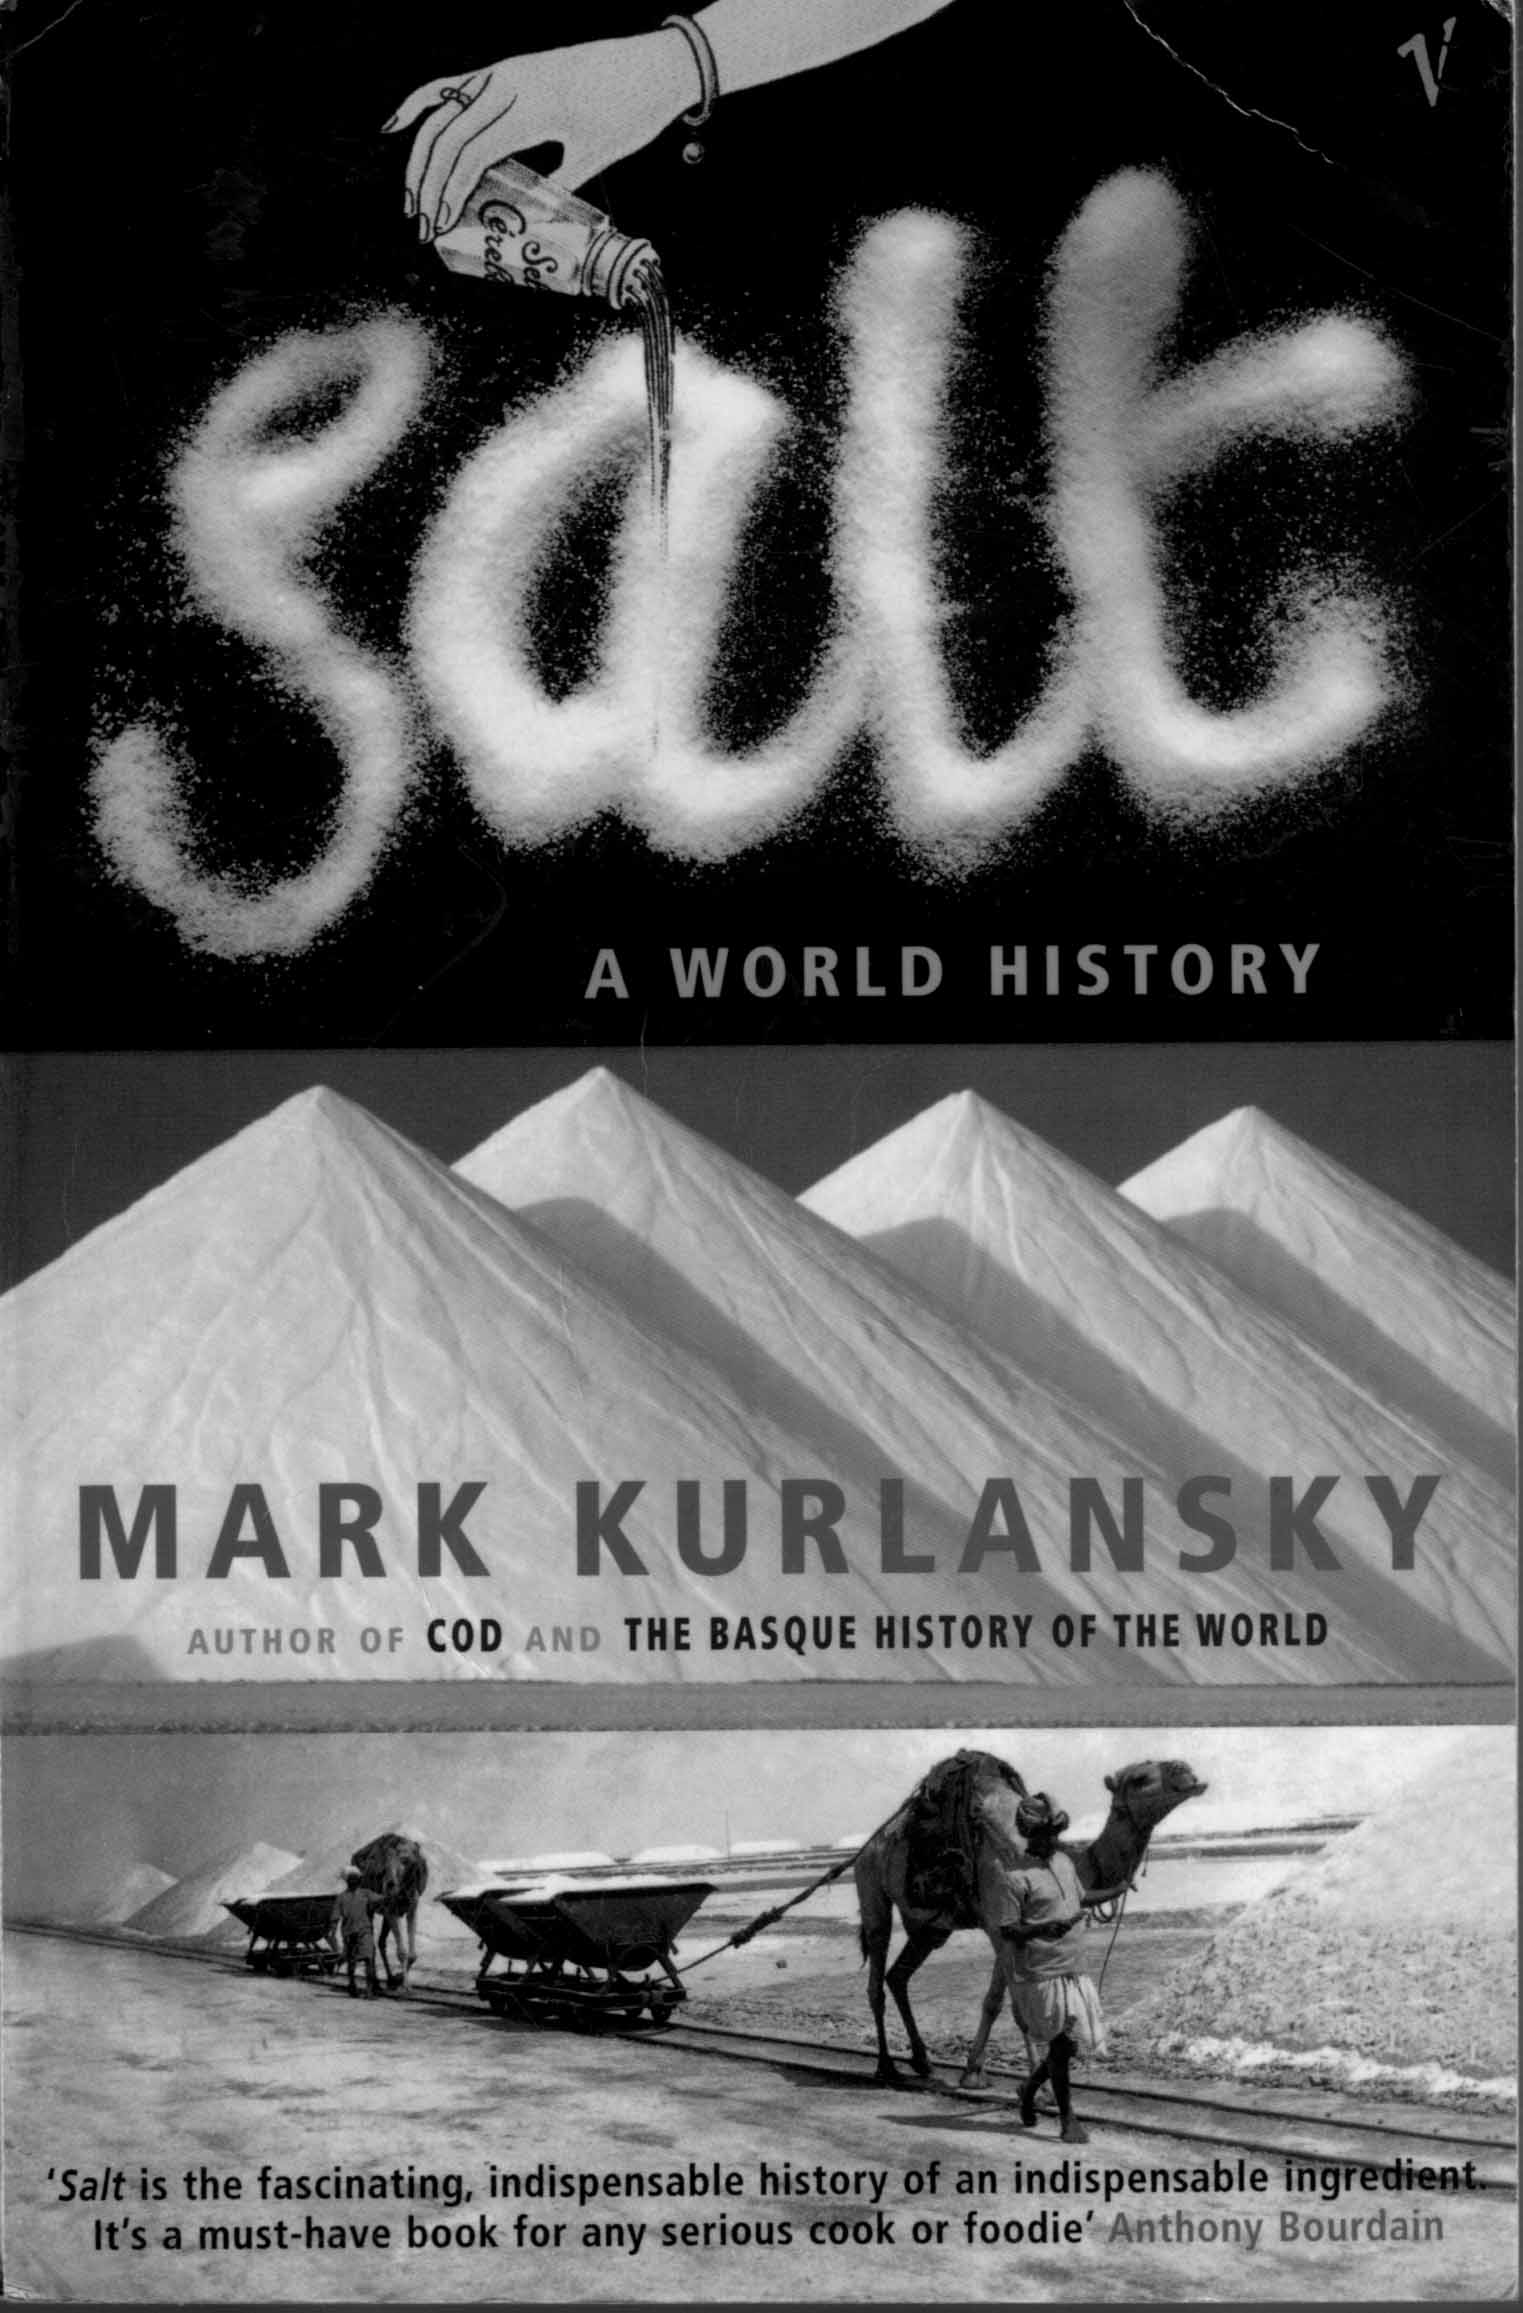 salt world history thesis 50 world history term paper topic ideas for college have you been assigned a world history topic for your college term paper here are 50 ideas to choose from.